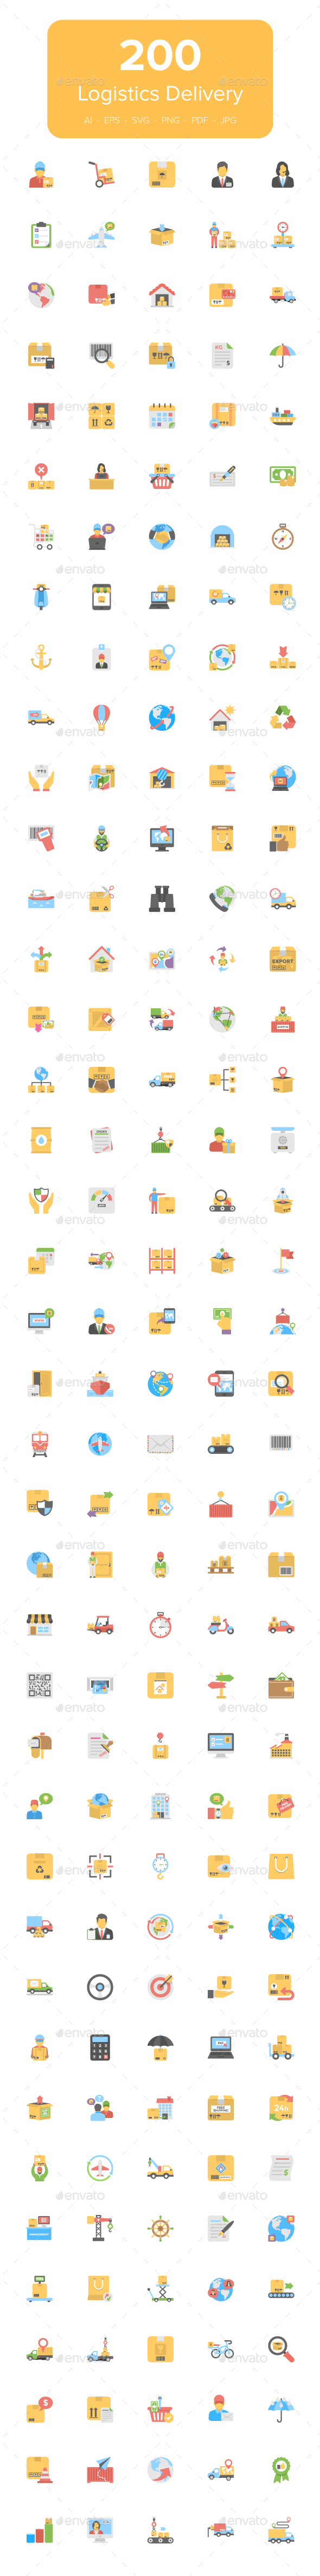 200 Flat Logistics Delivery Icons - Icons